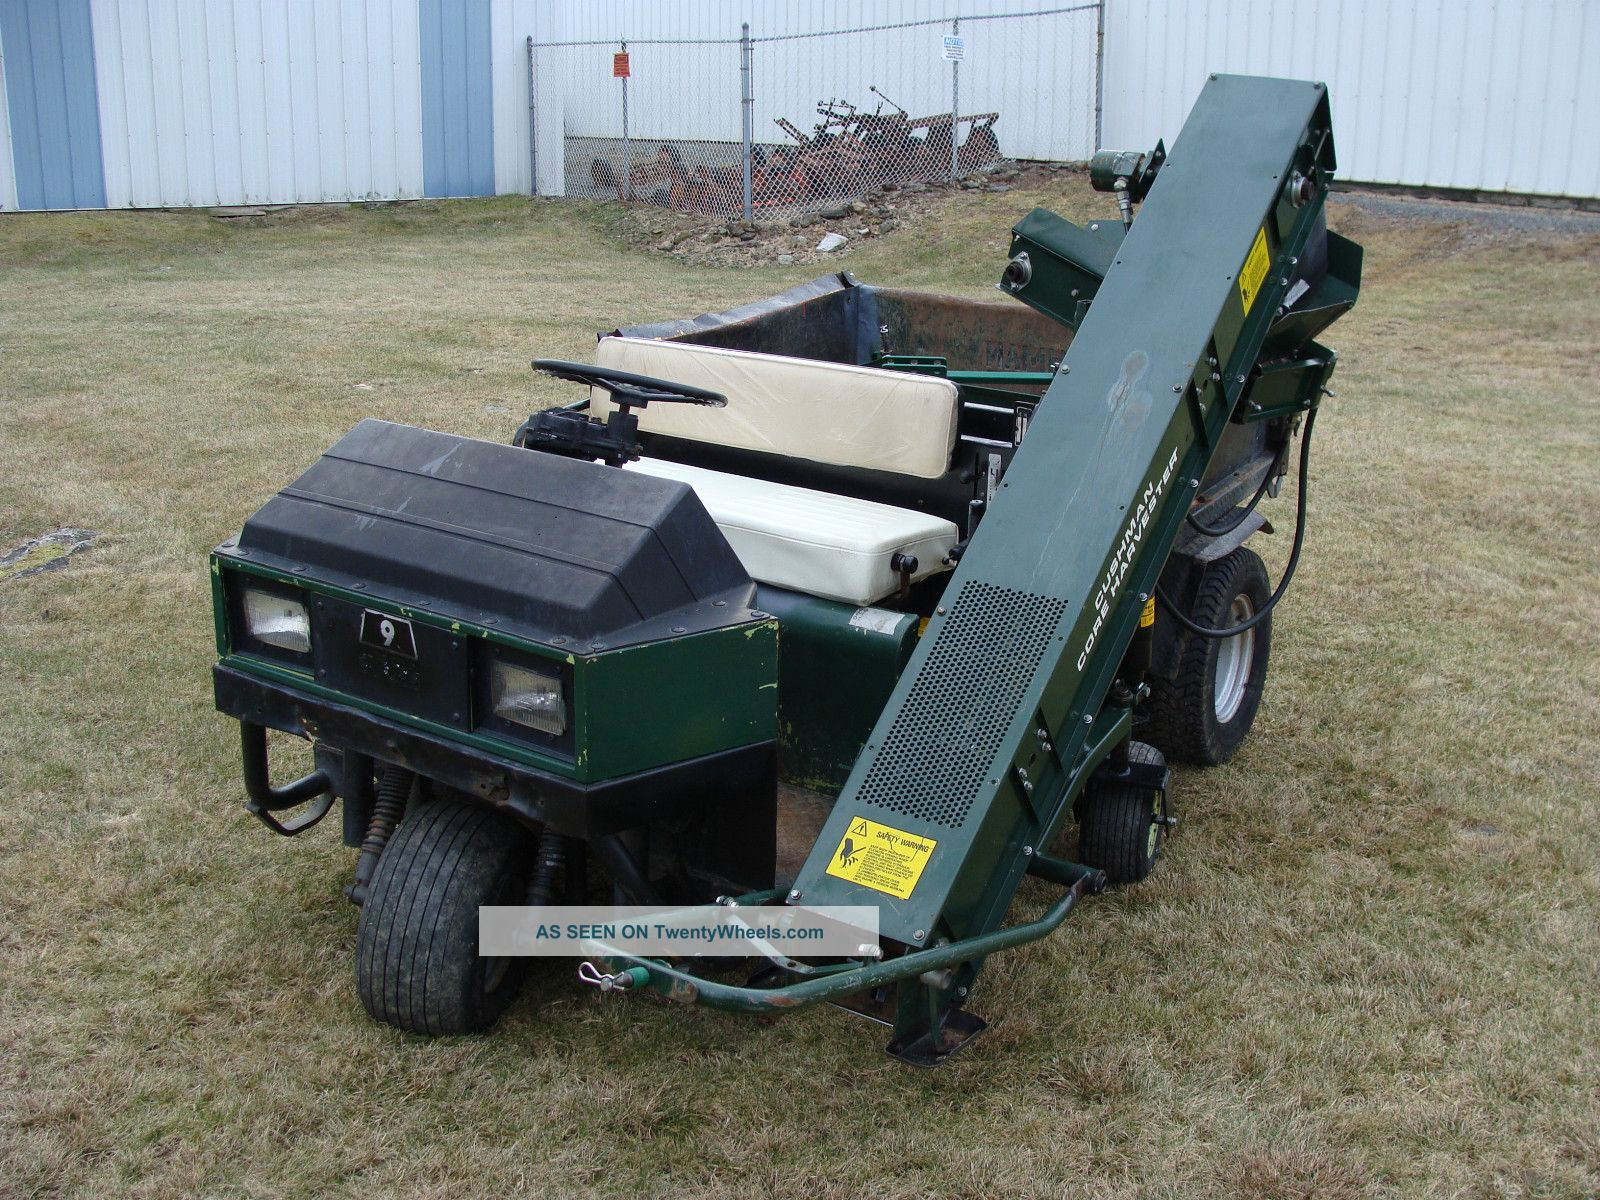 Cushman Truckster W/ Core Harvester Utility Vehicles photo